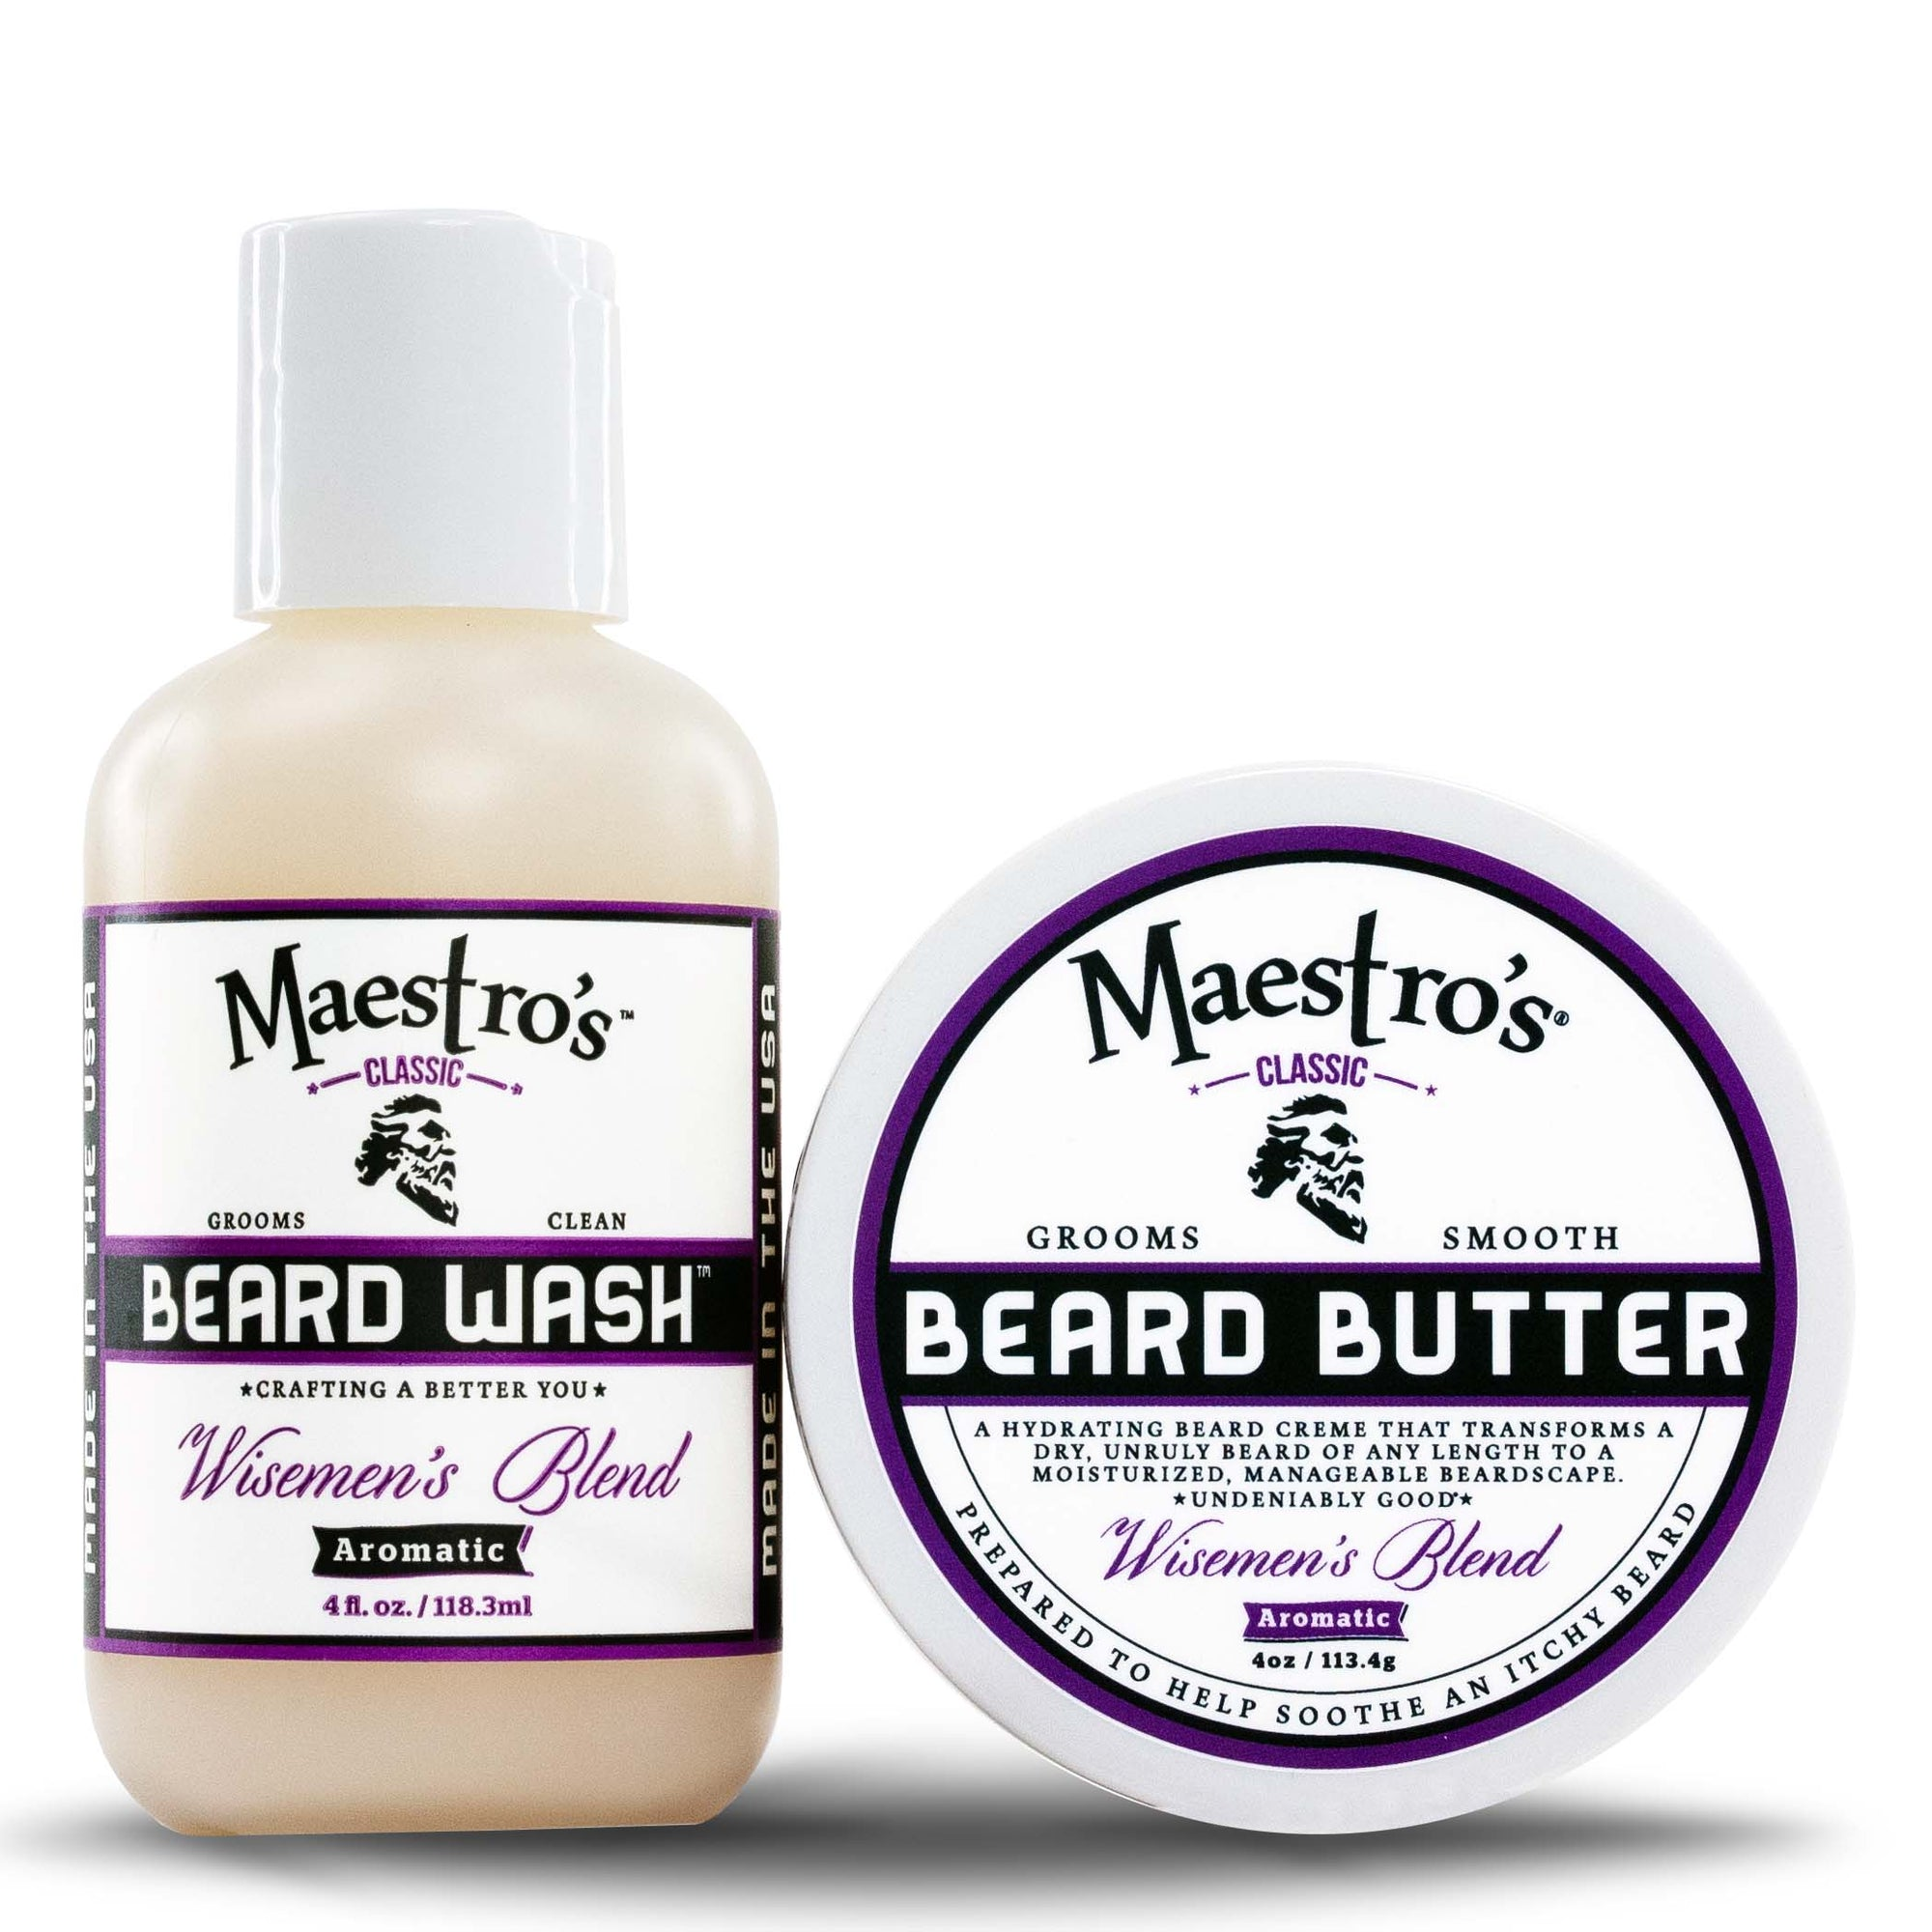 Maestro's Classic Wisemen's Blend beard care products